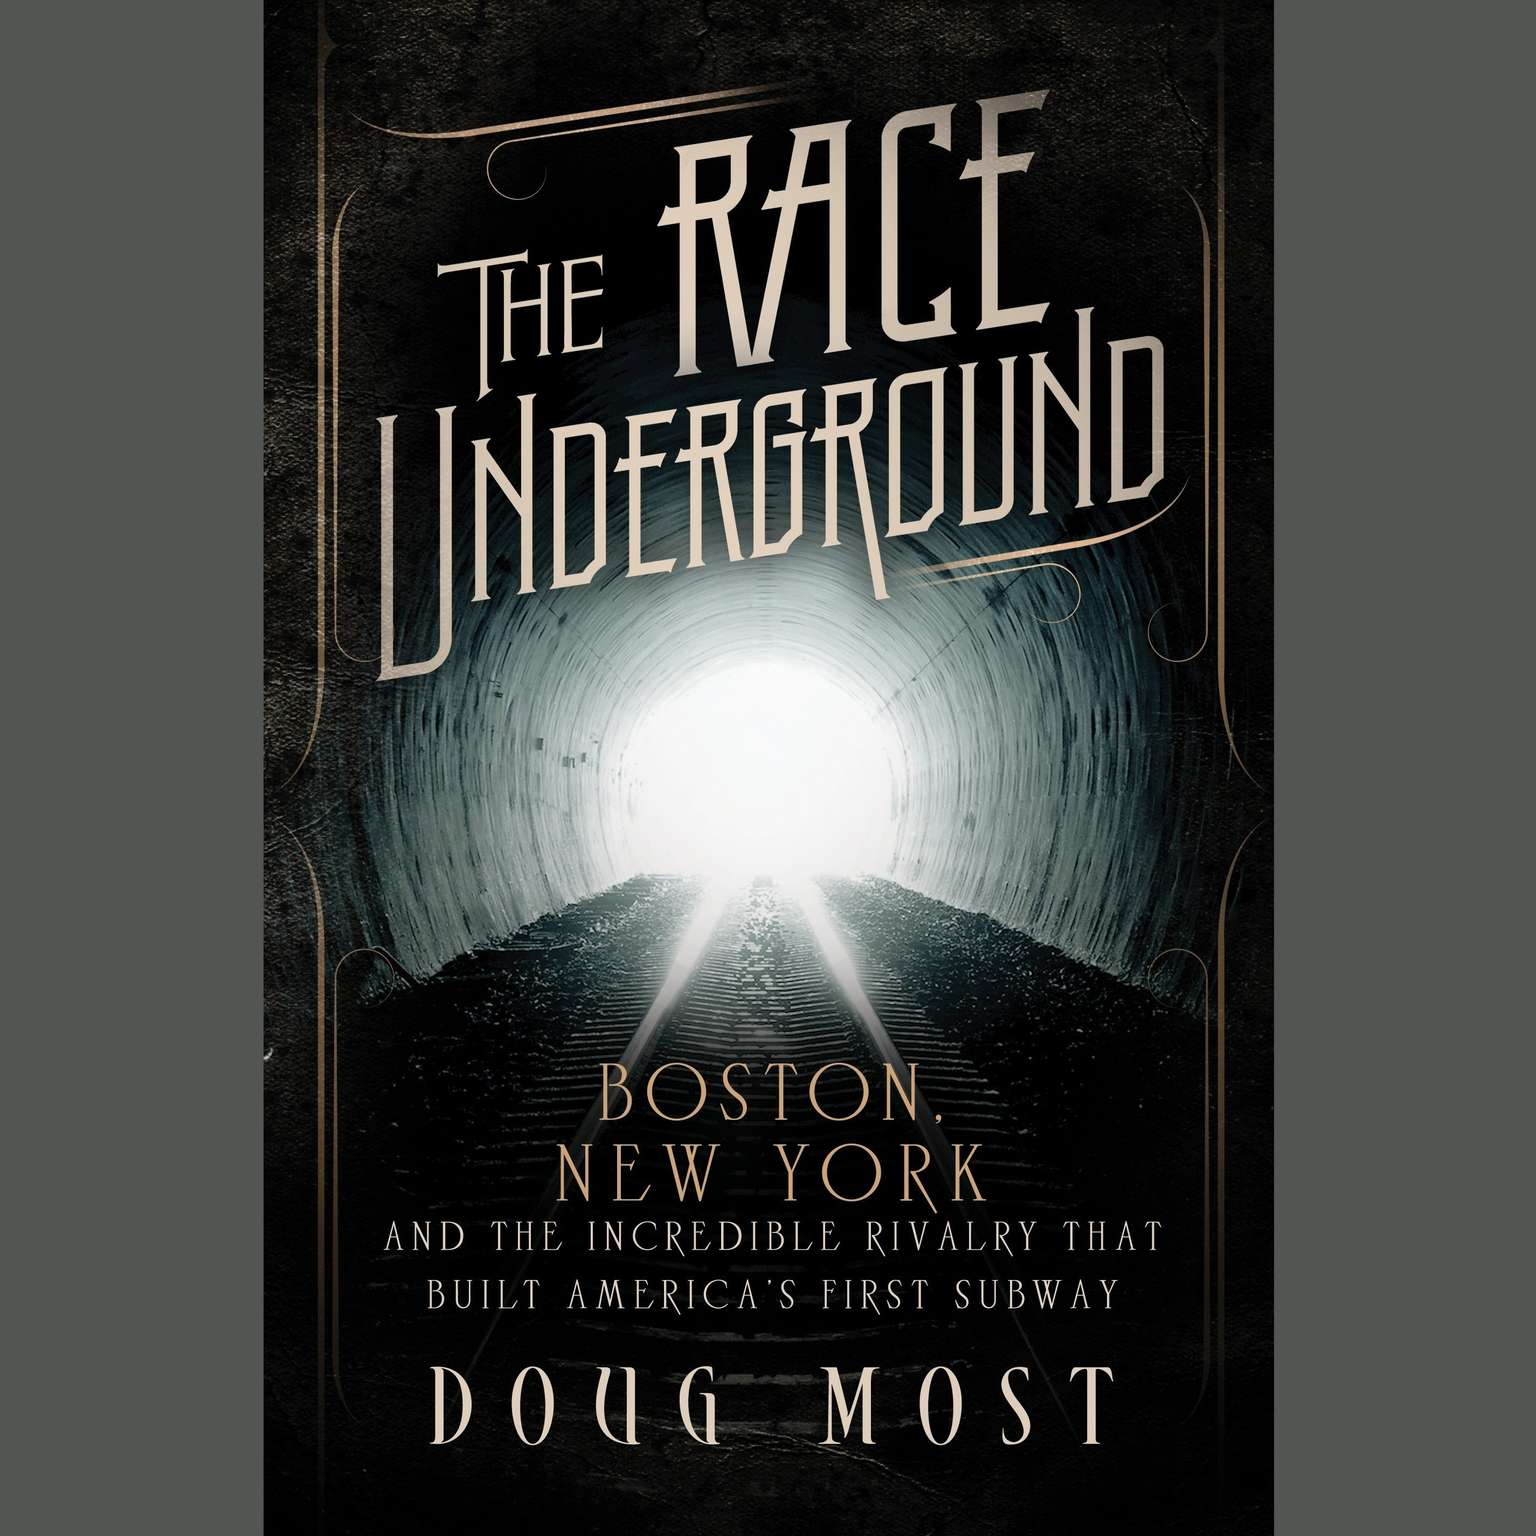 Printable The Race Underground: Boston, New York, and the Incredible Rivalry That Built America's First Subway Audiobook Cover Art